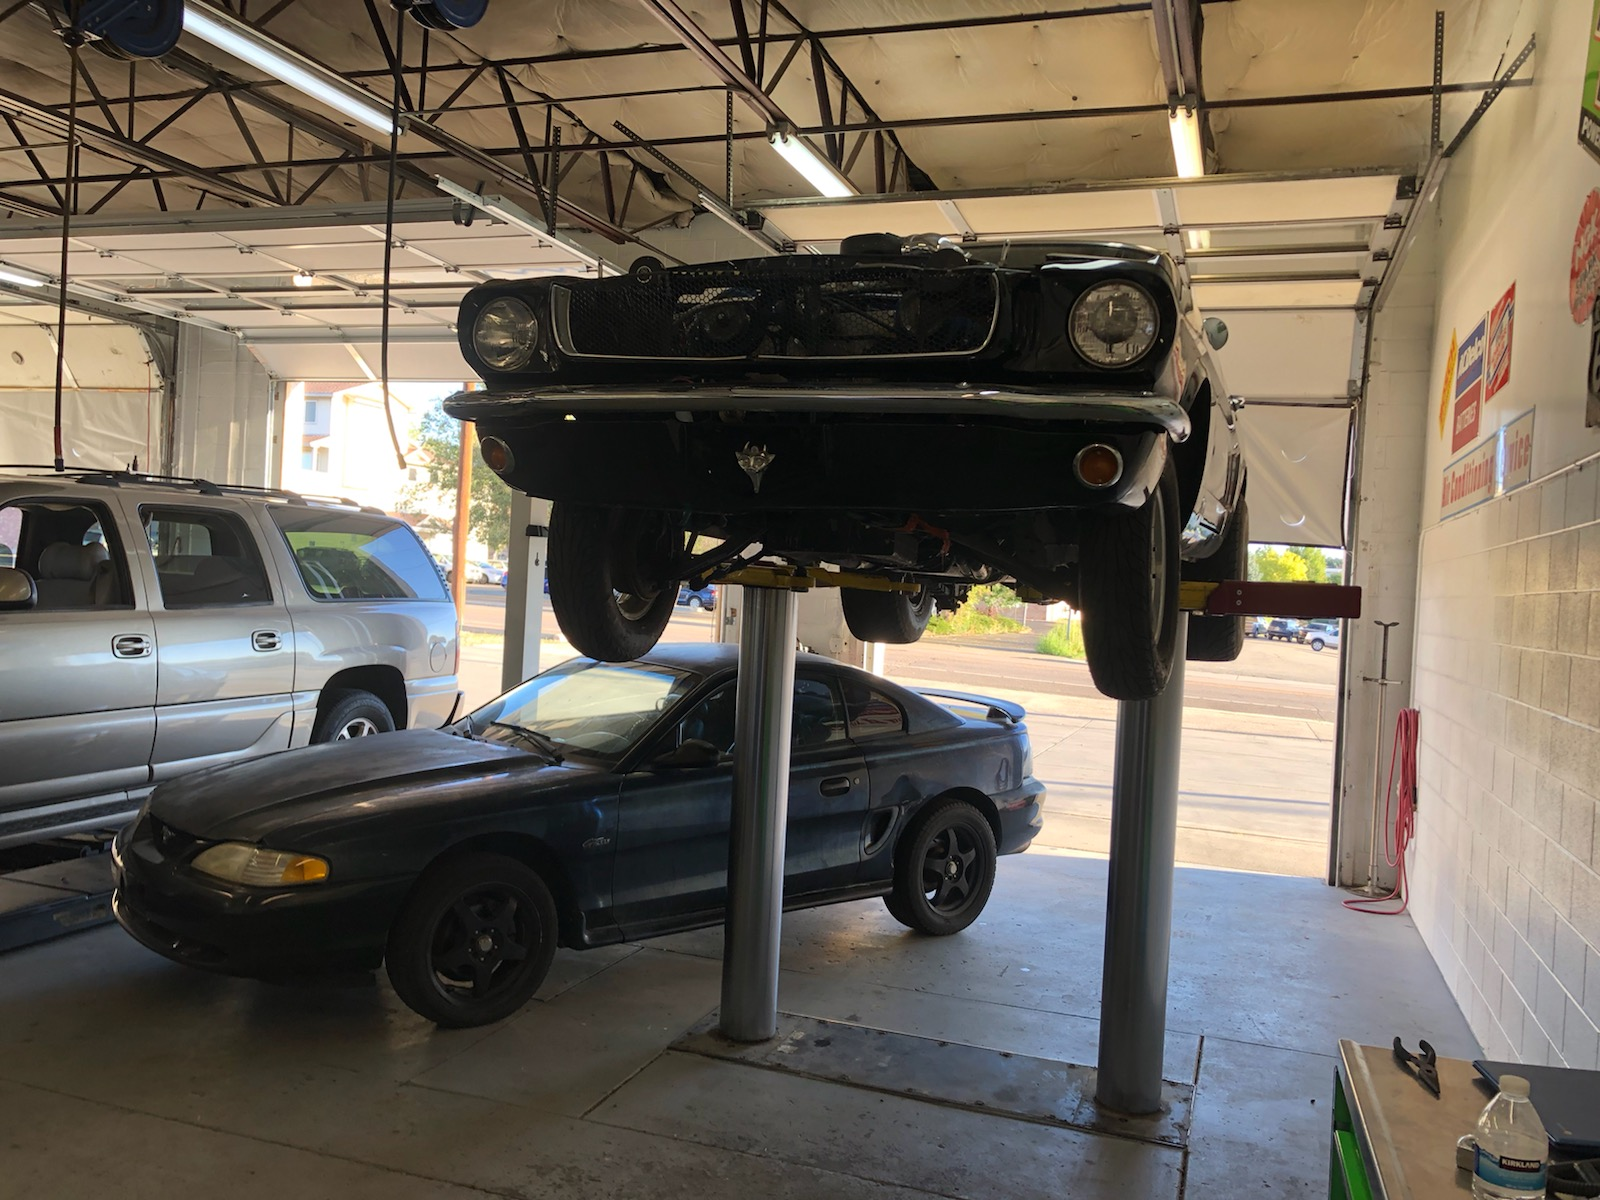 Mustangs Clear Choice Automotive 1490 W. 70th Ave #4 Denver, CO 80221